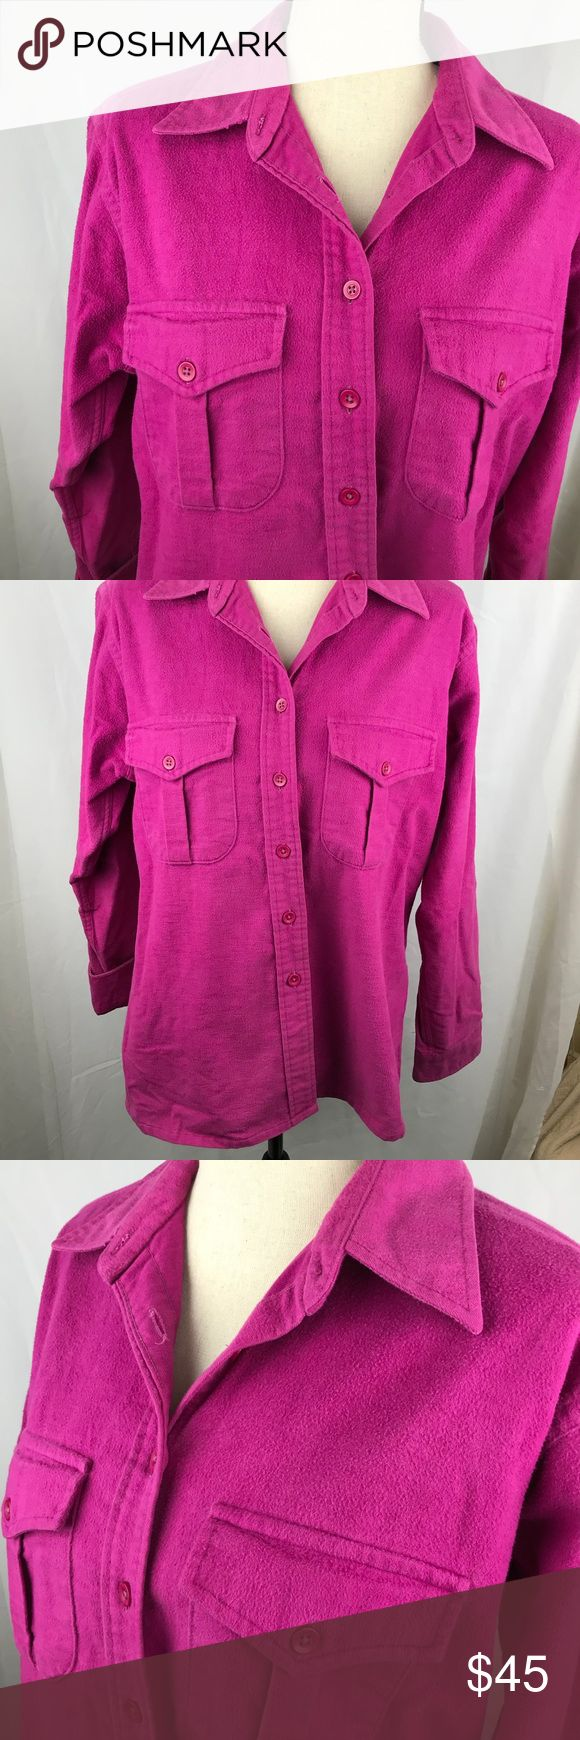 L.L. Bean Chamois Shirt 18 XL 1X Pink Button Down LL Bean Button Down chamois Shirt Blouse Top very good soft gently pre owned condition. 100% Cotton Womens 18 bright pink L.L. Bean Tops Blouses